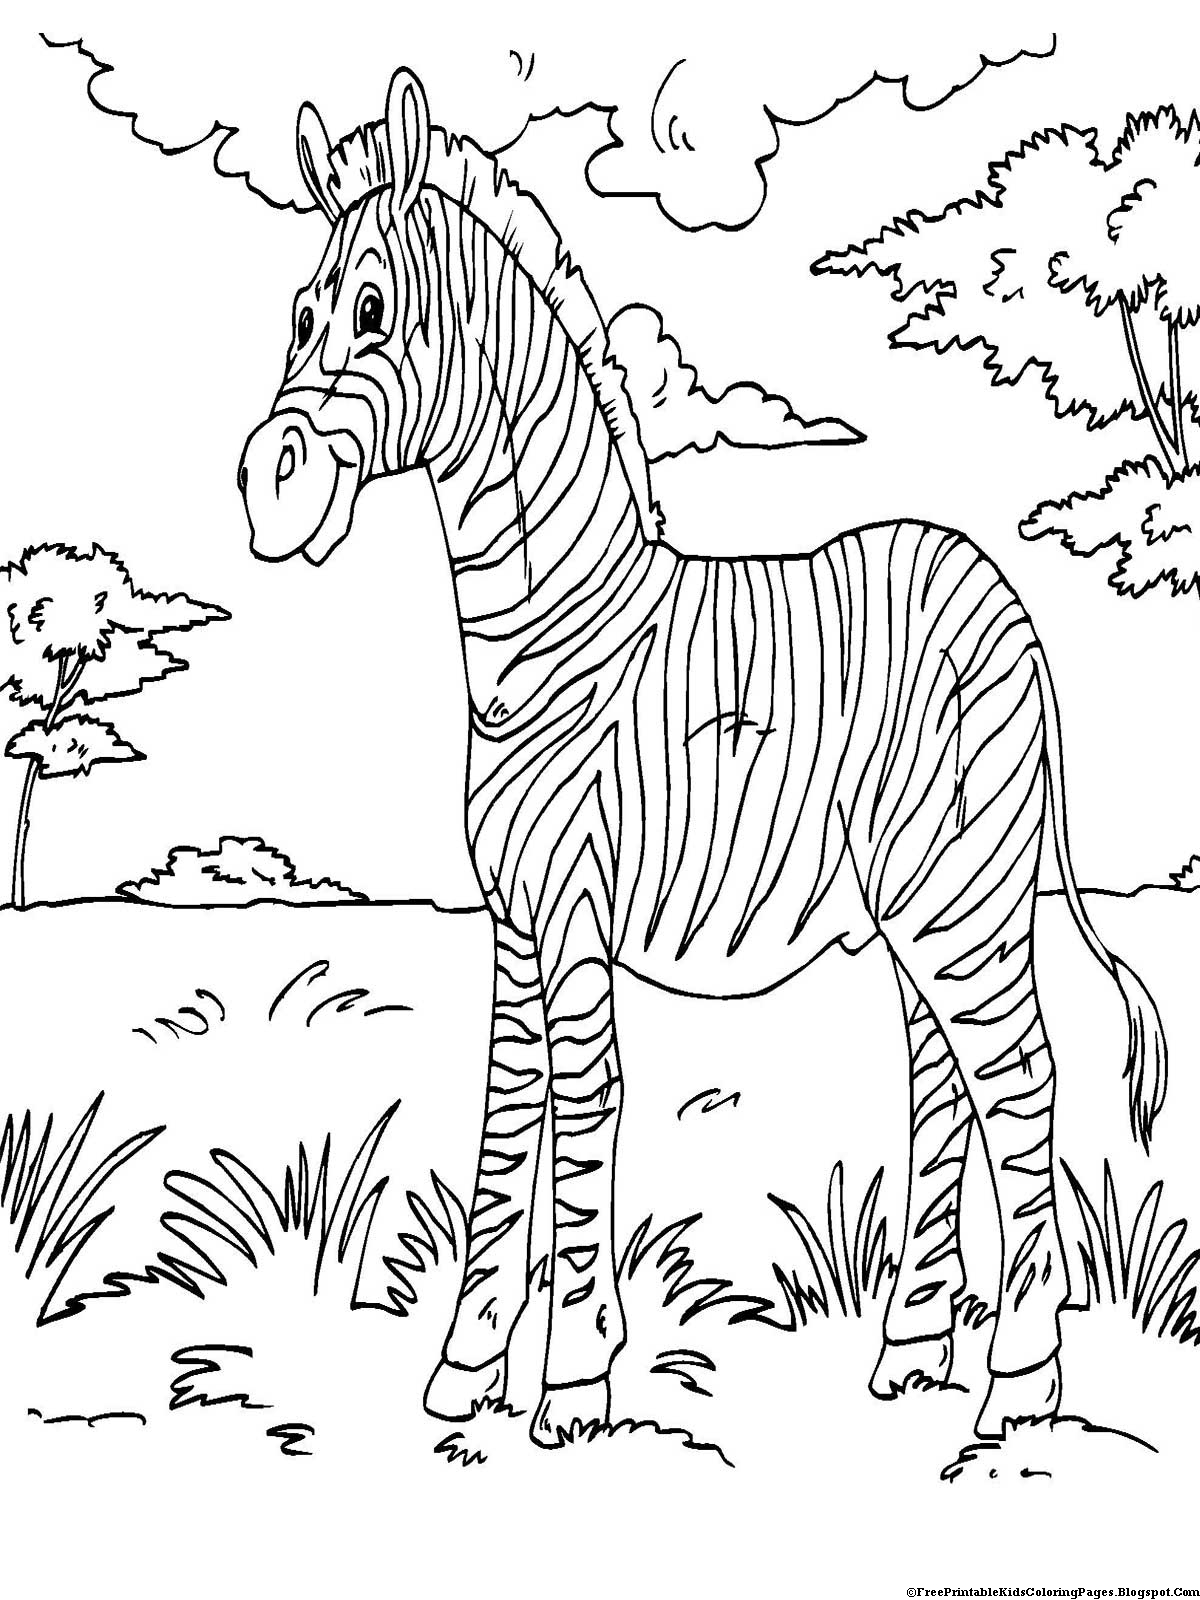 zebra colouring pages to print zebra coloring pages coloring pages to download and print print colouring pages to zebra